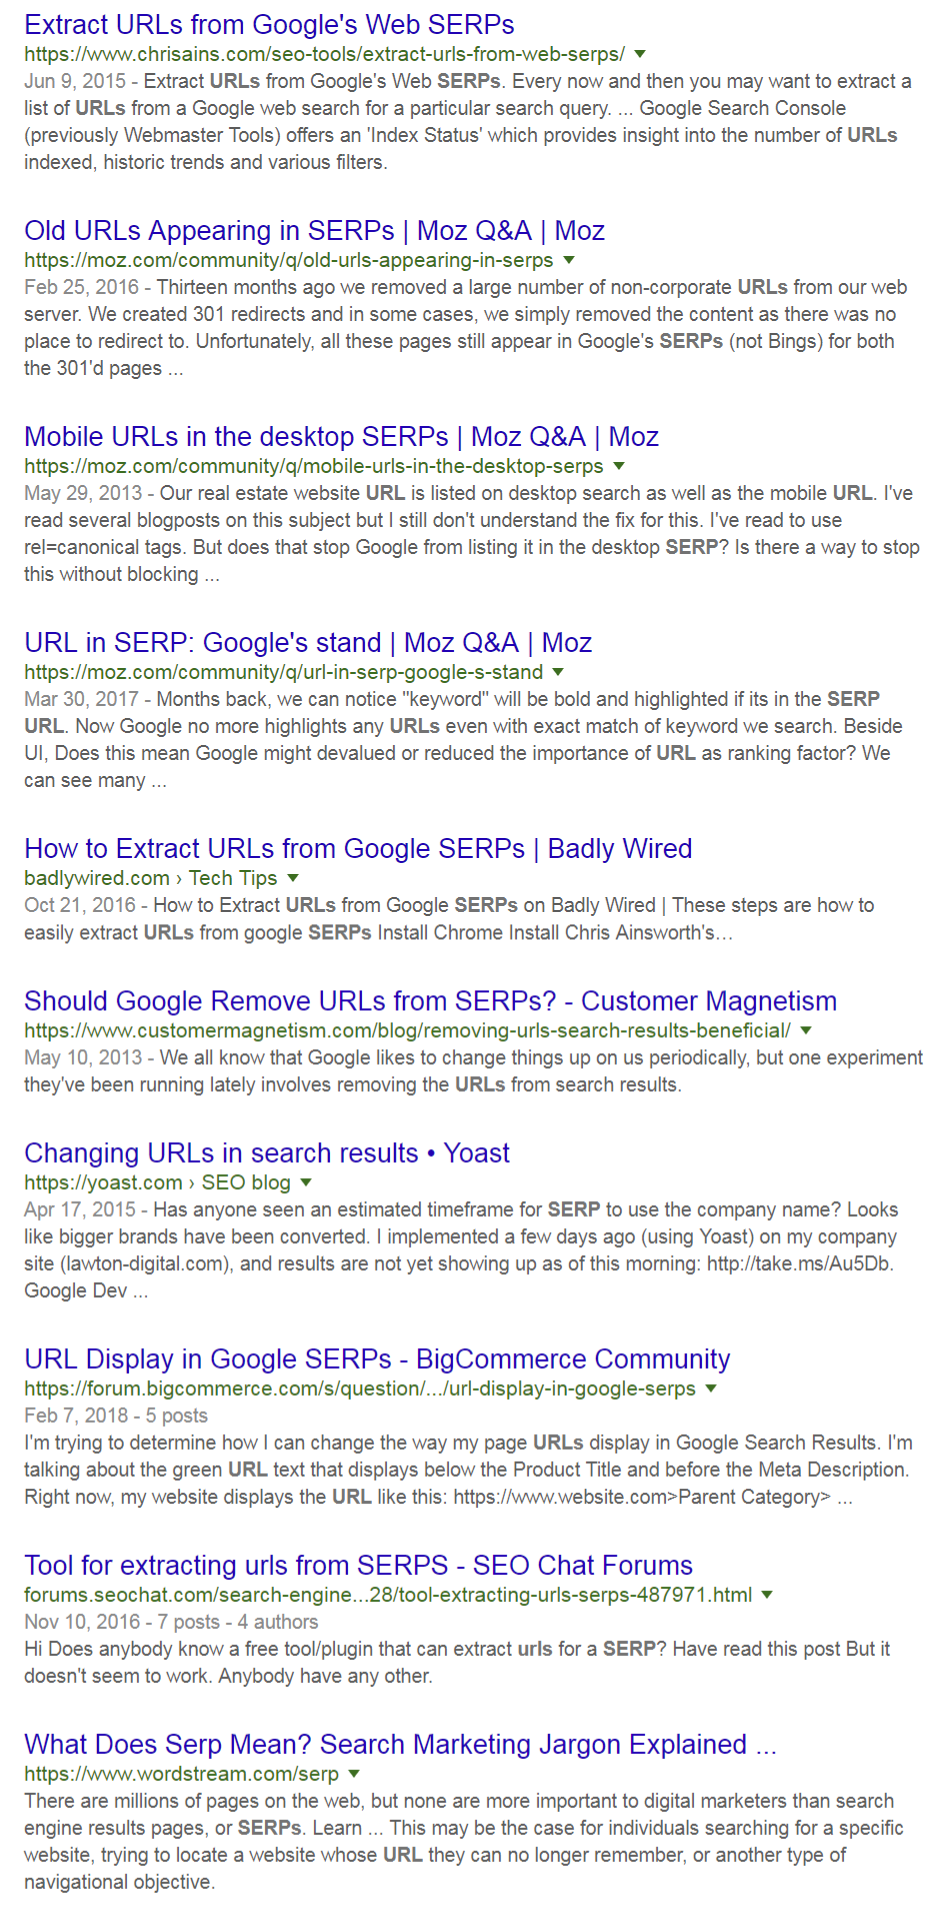 ULTIMATE Seo Urls 5 - by FWR Media - Page 175 - General Add